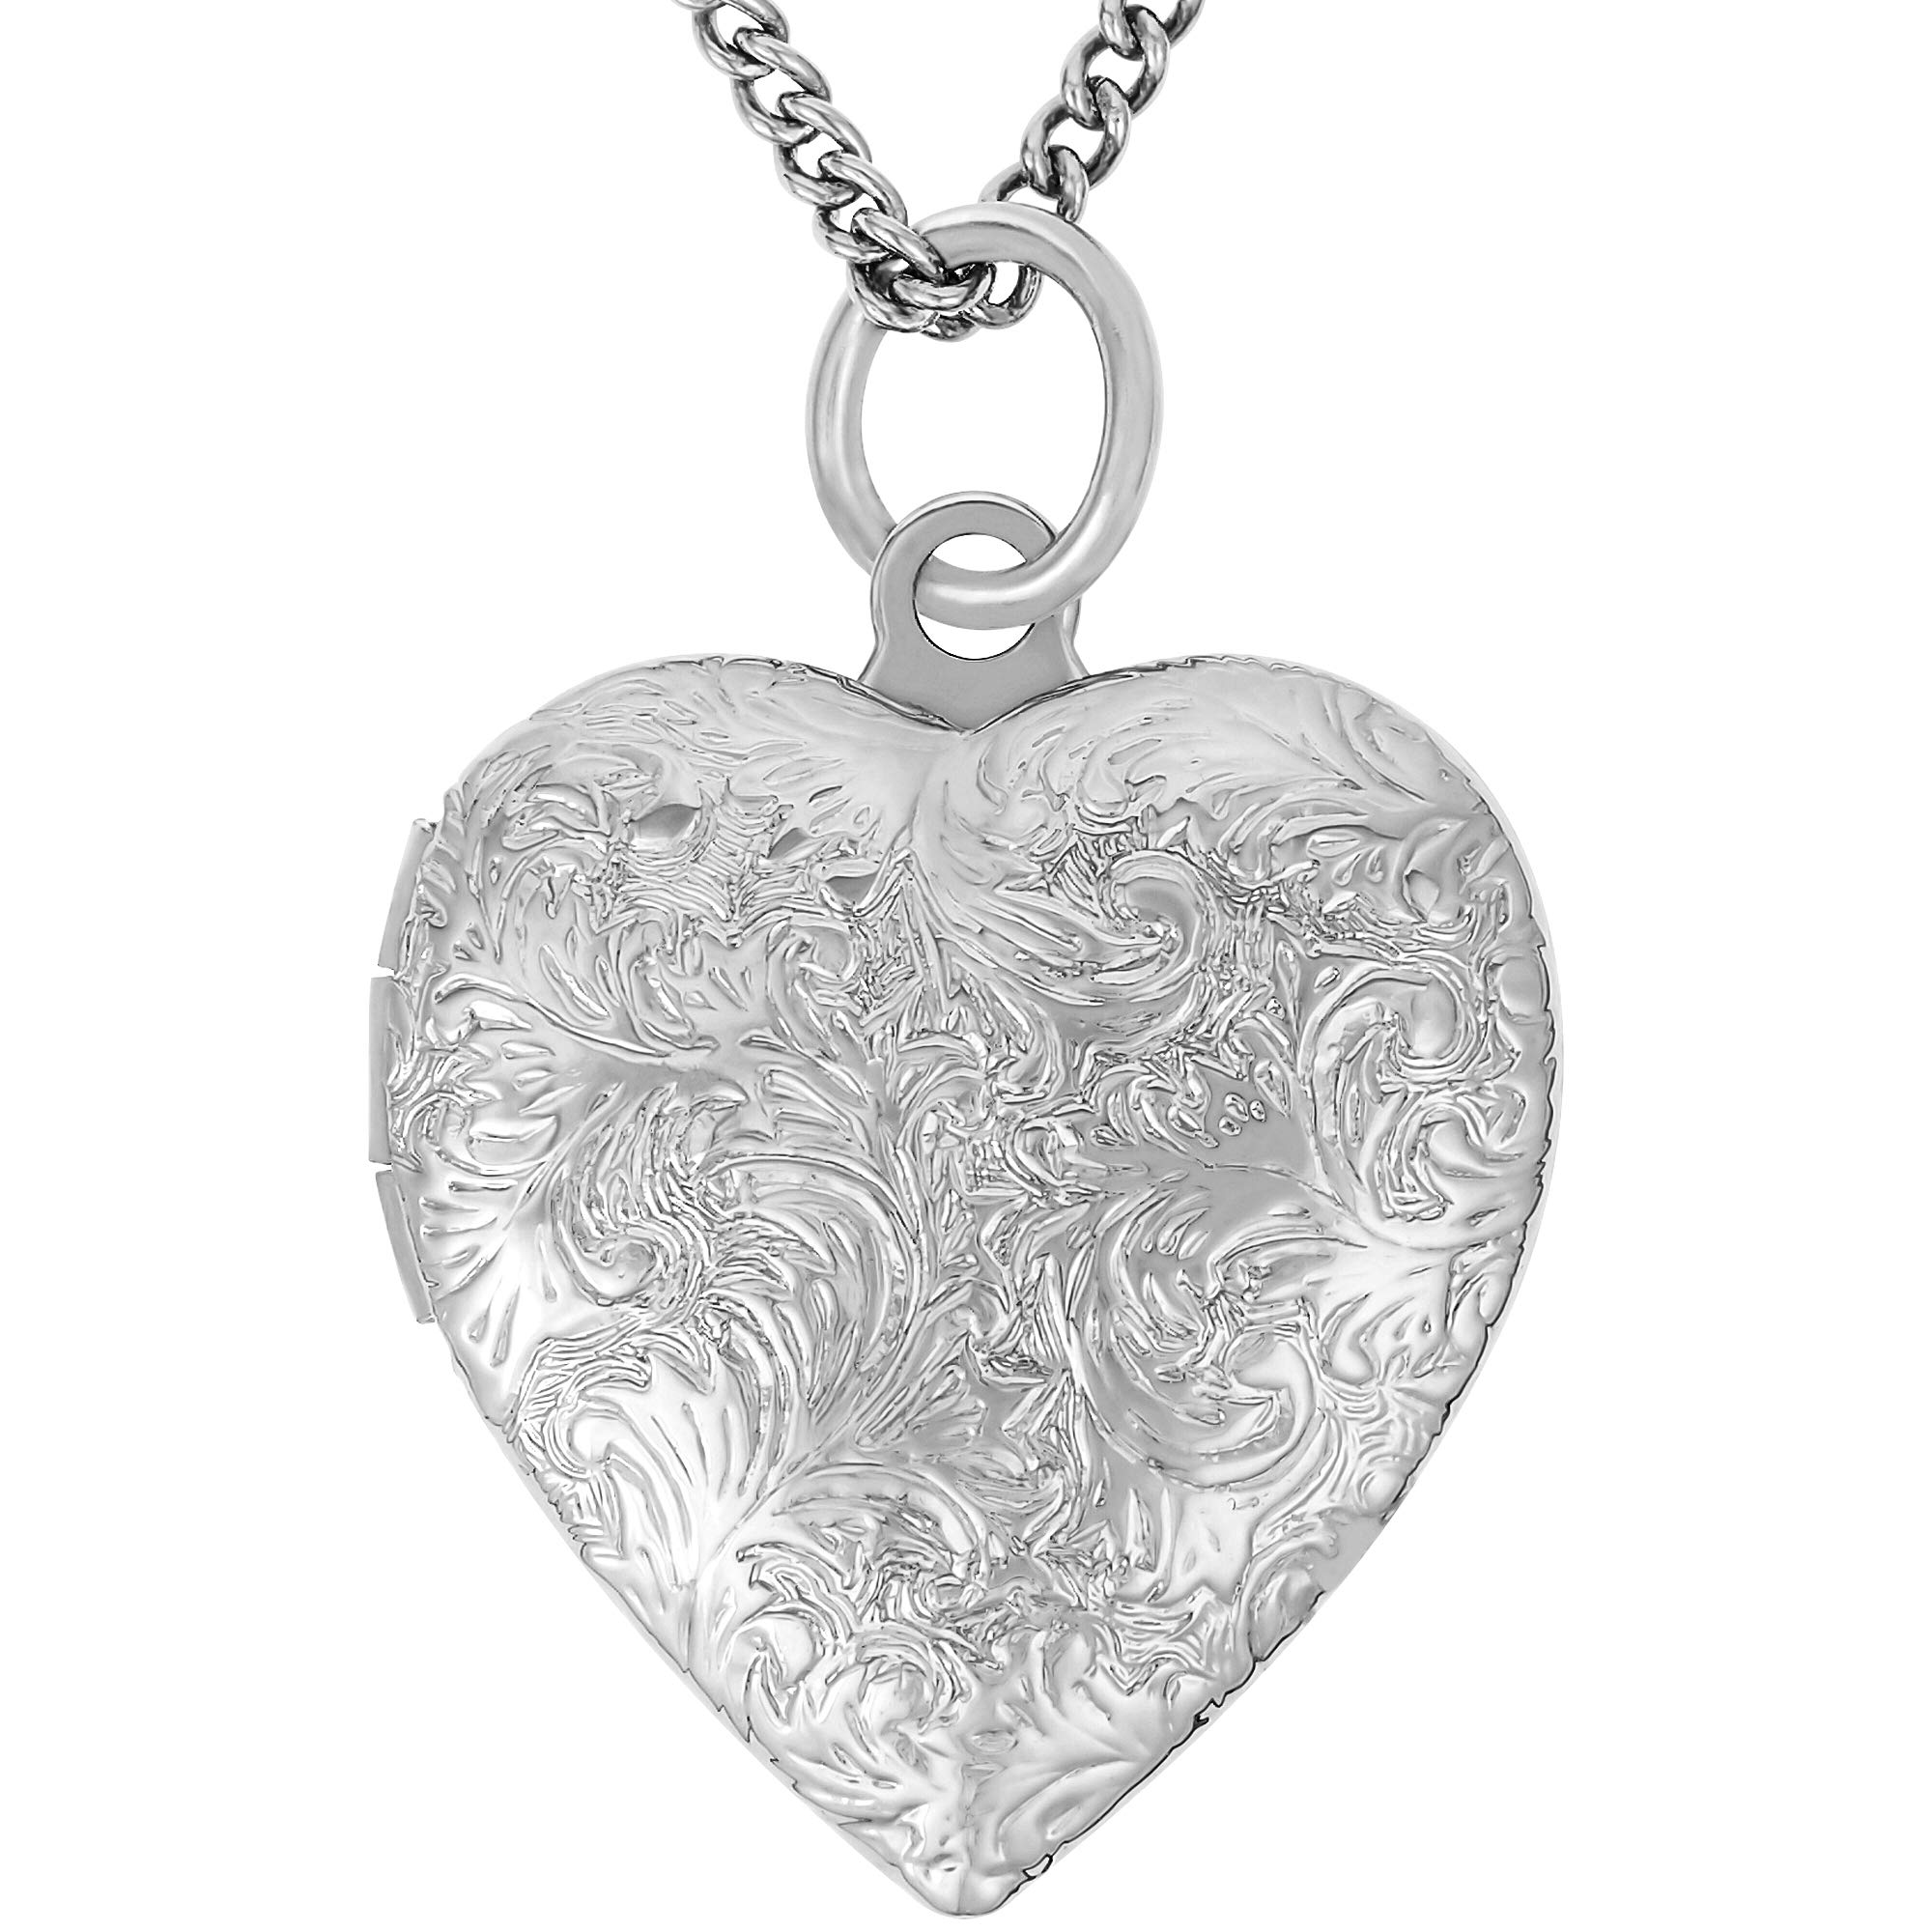 Lifetime Jewelry Heart Locket Necklace, Antique, 24K Gold Over Semi Precious Metals, Guaranteed for Life (Choice of Pendant with or Without Chain) (Rhodium Locket & Chain)